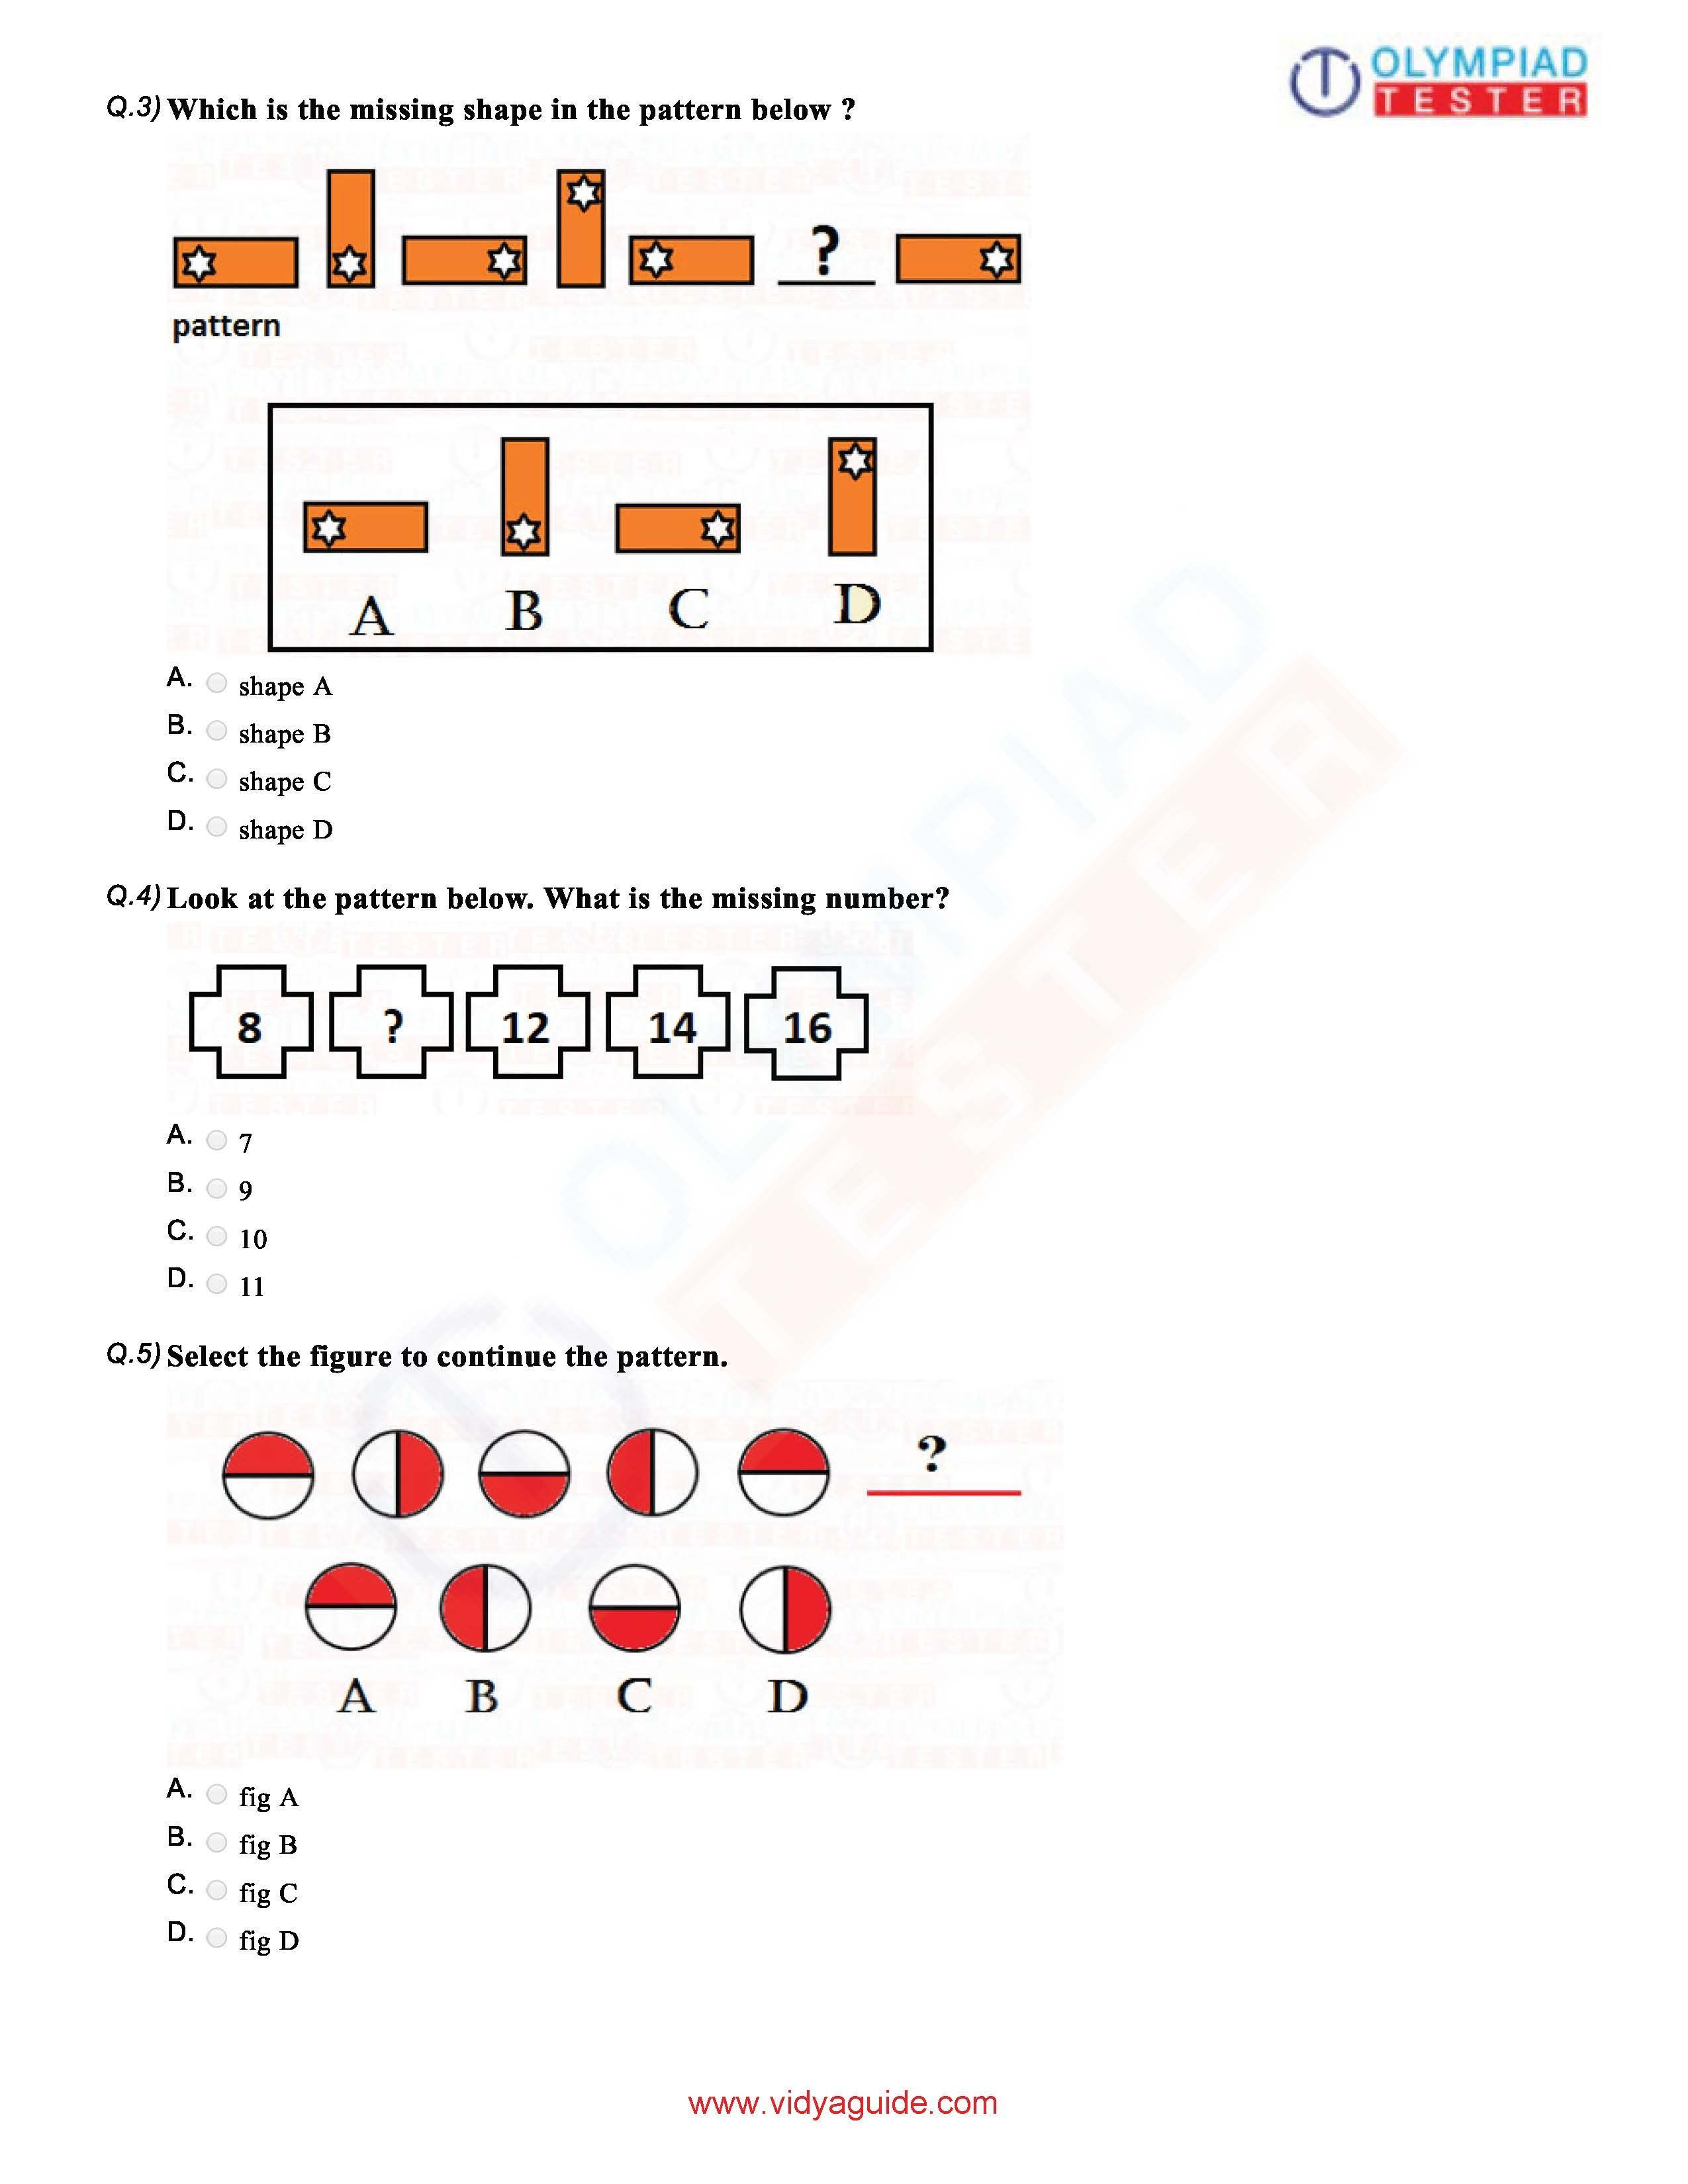 Download Grade 1 Maths Olympiad Sample Papers As Pdf Worksheets On Our Website Class 1 Imo Free Course Of Olympiadtester Has Math Olympiad Class 1 Maths Math